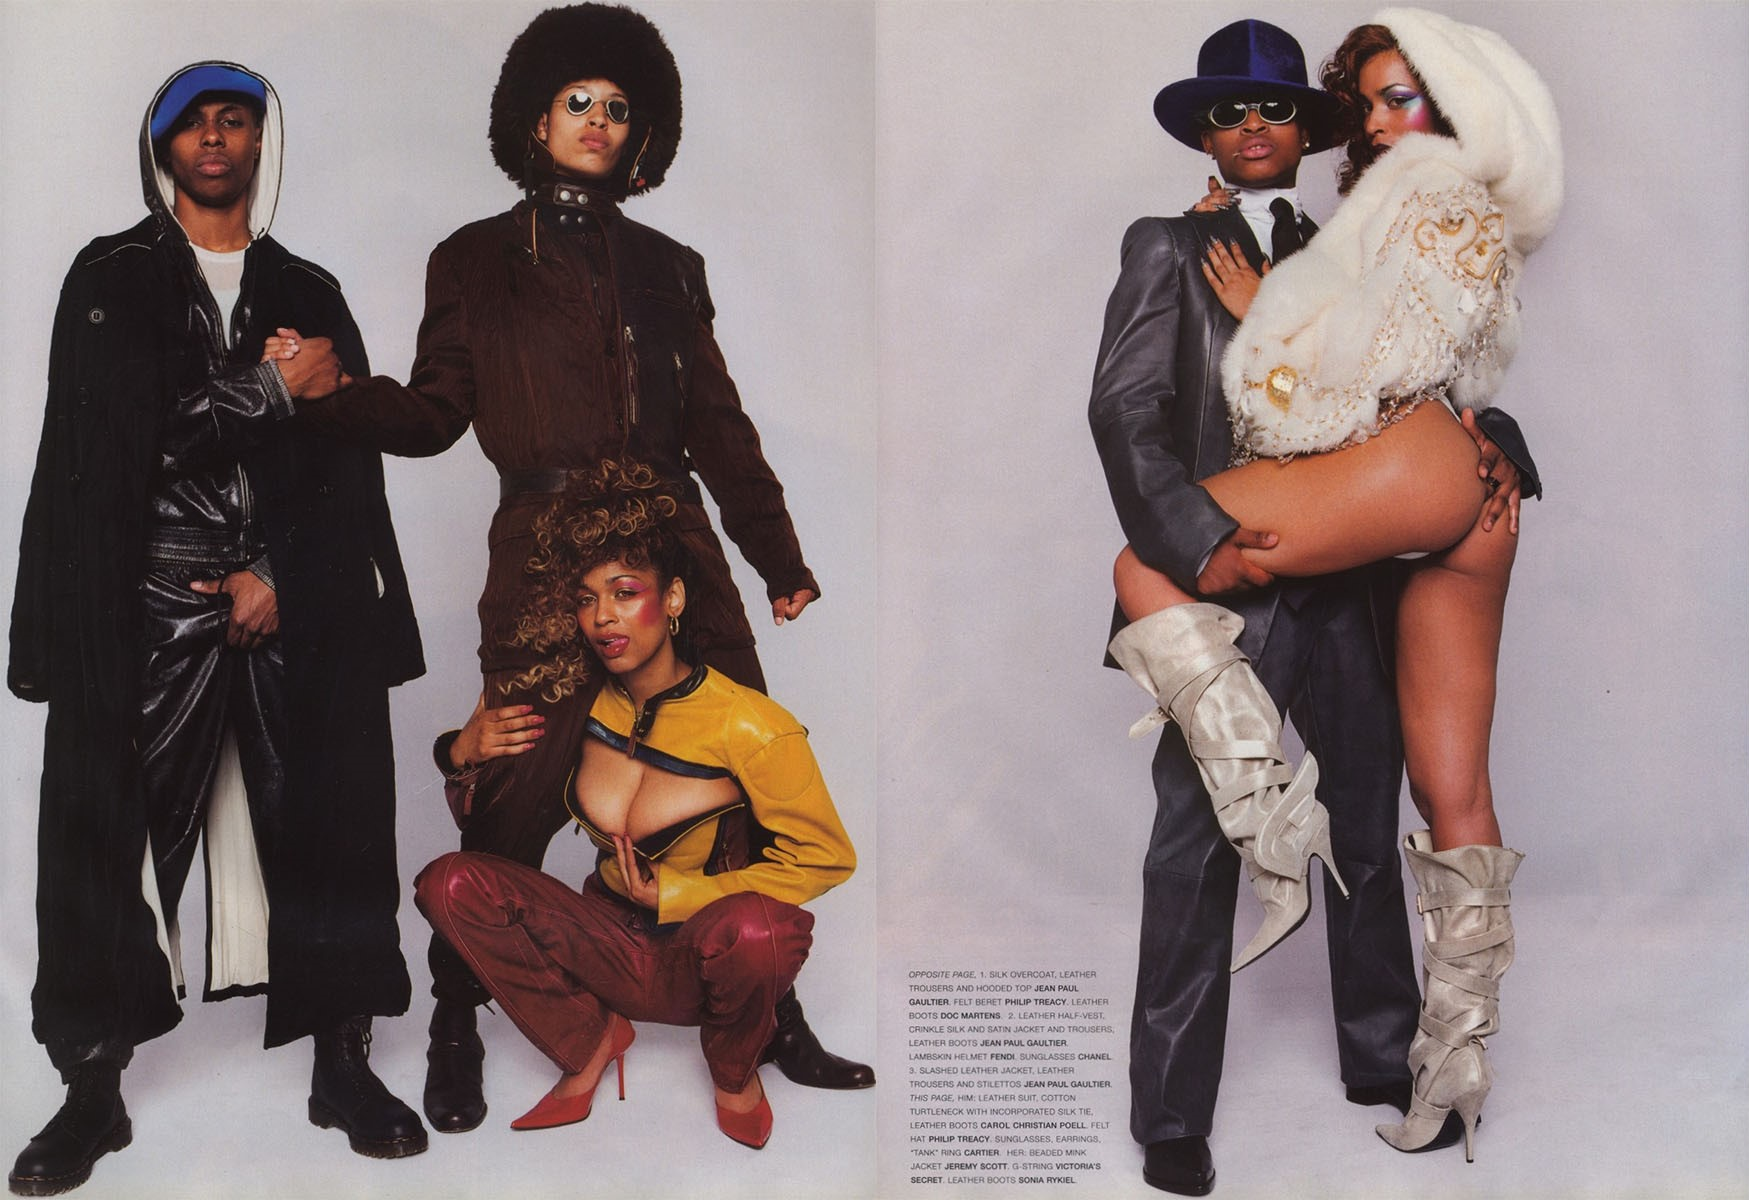 gang bang photography terry richardson stylist jason farrer vogue hommes international fw 2001 02 5